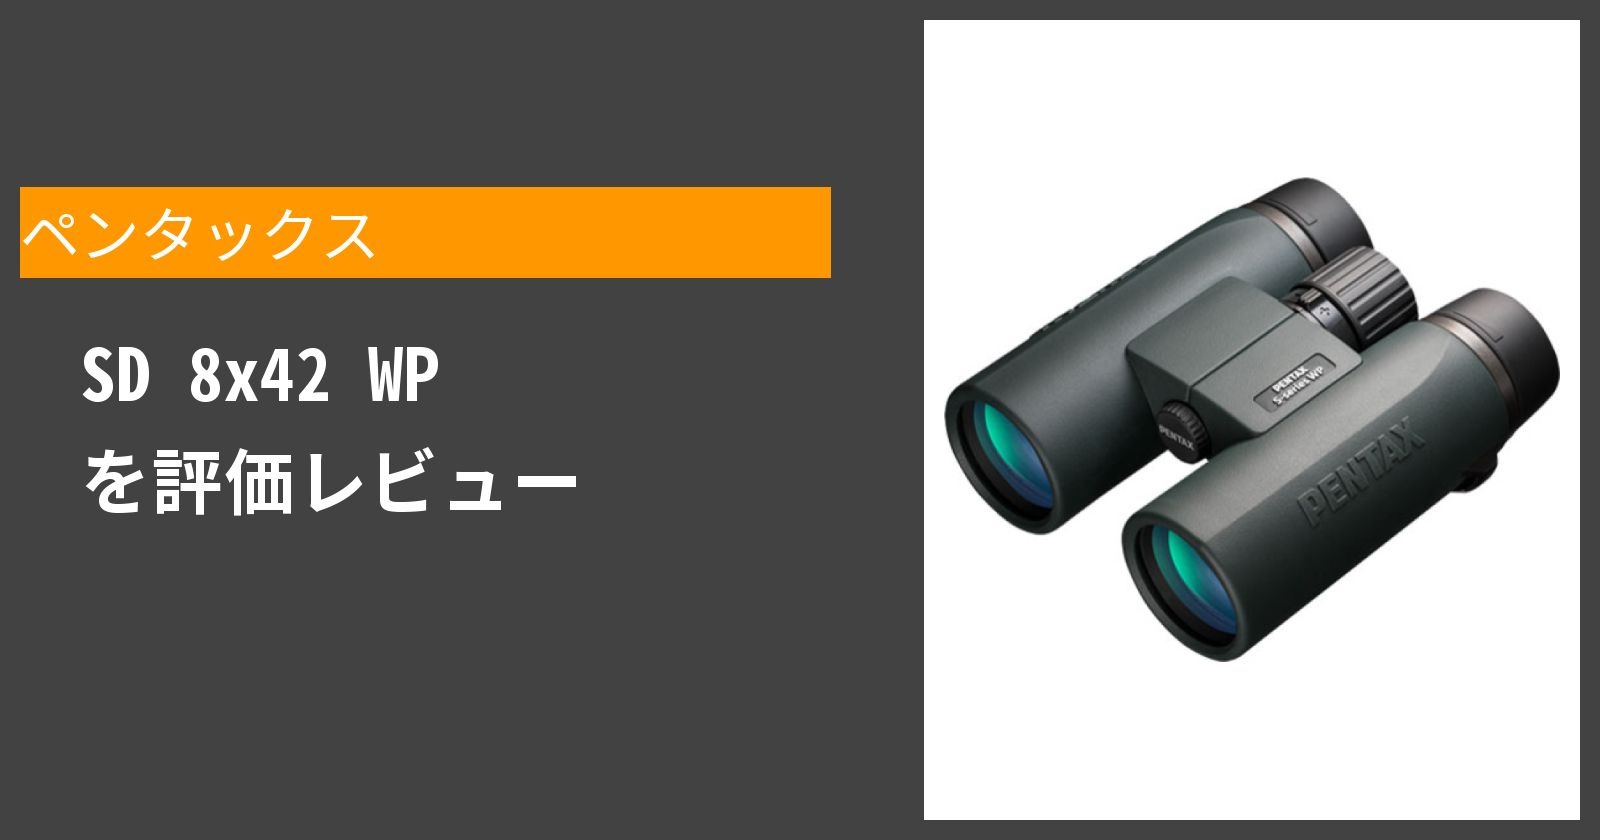 SD 8x42 WPを徹底評価